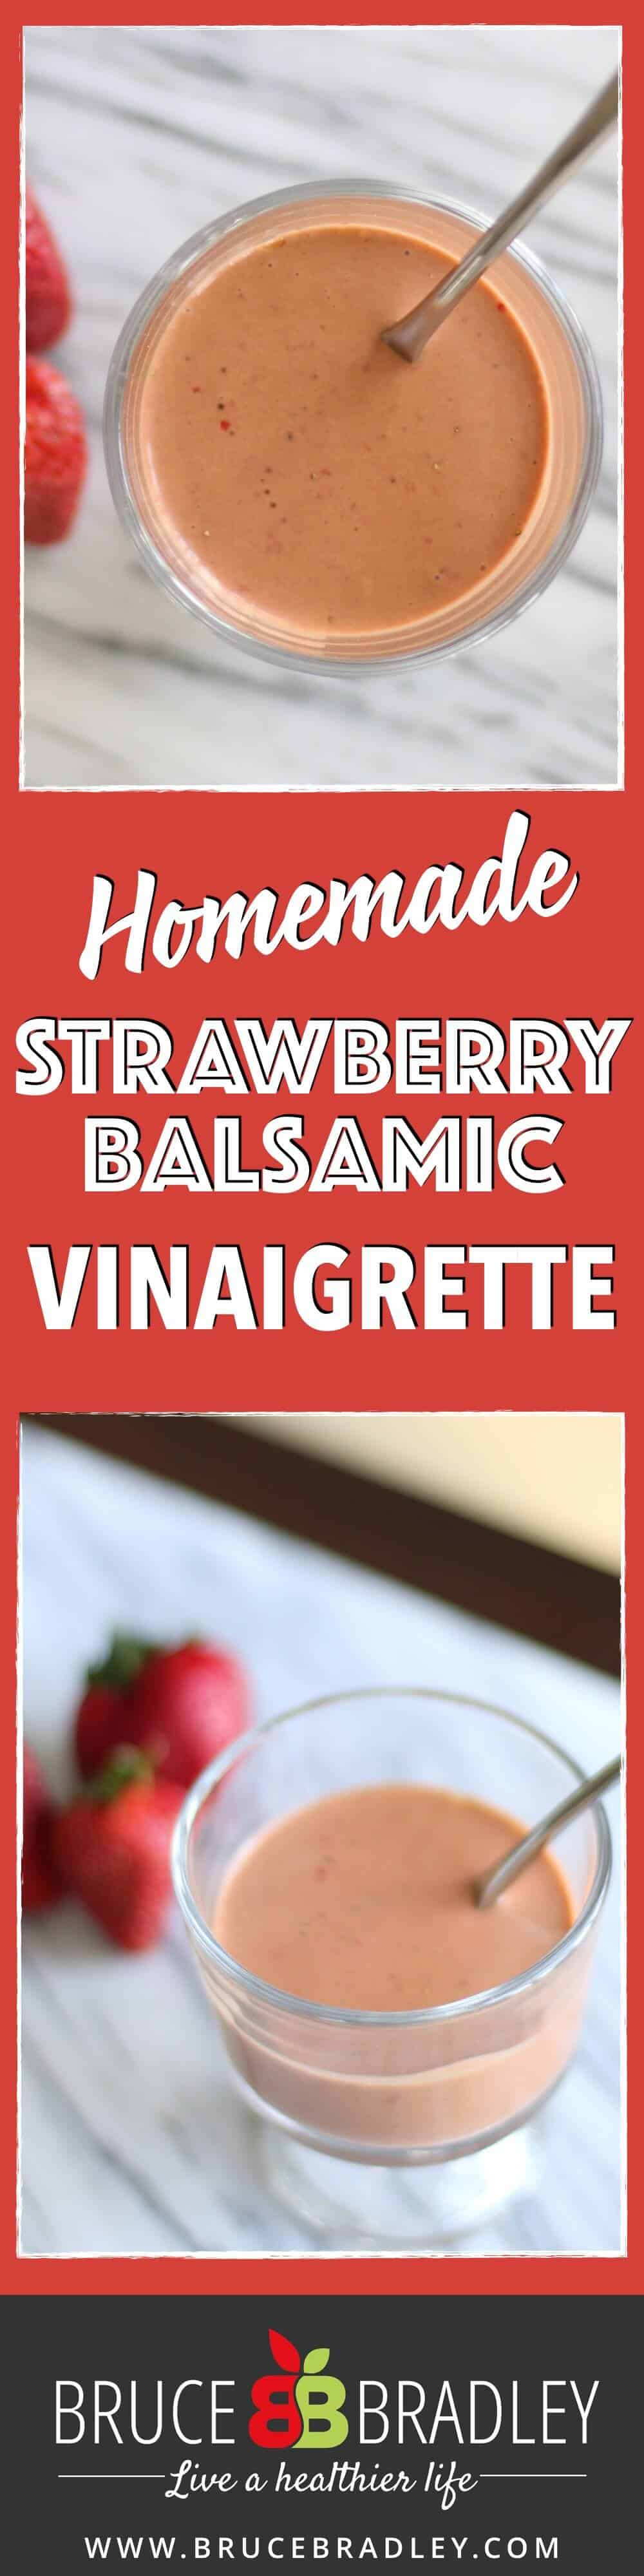 This Strawberry Balsamic Vinaigrette salad dressing is made with fresh or frozen strawberries and turns your salad from ordinary to extraordinary in a flash!